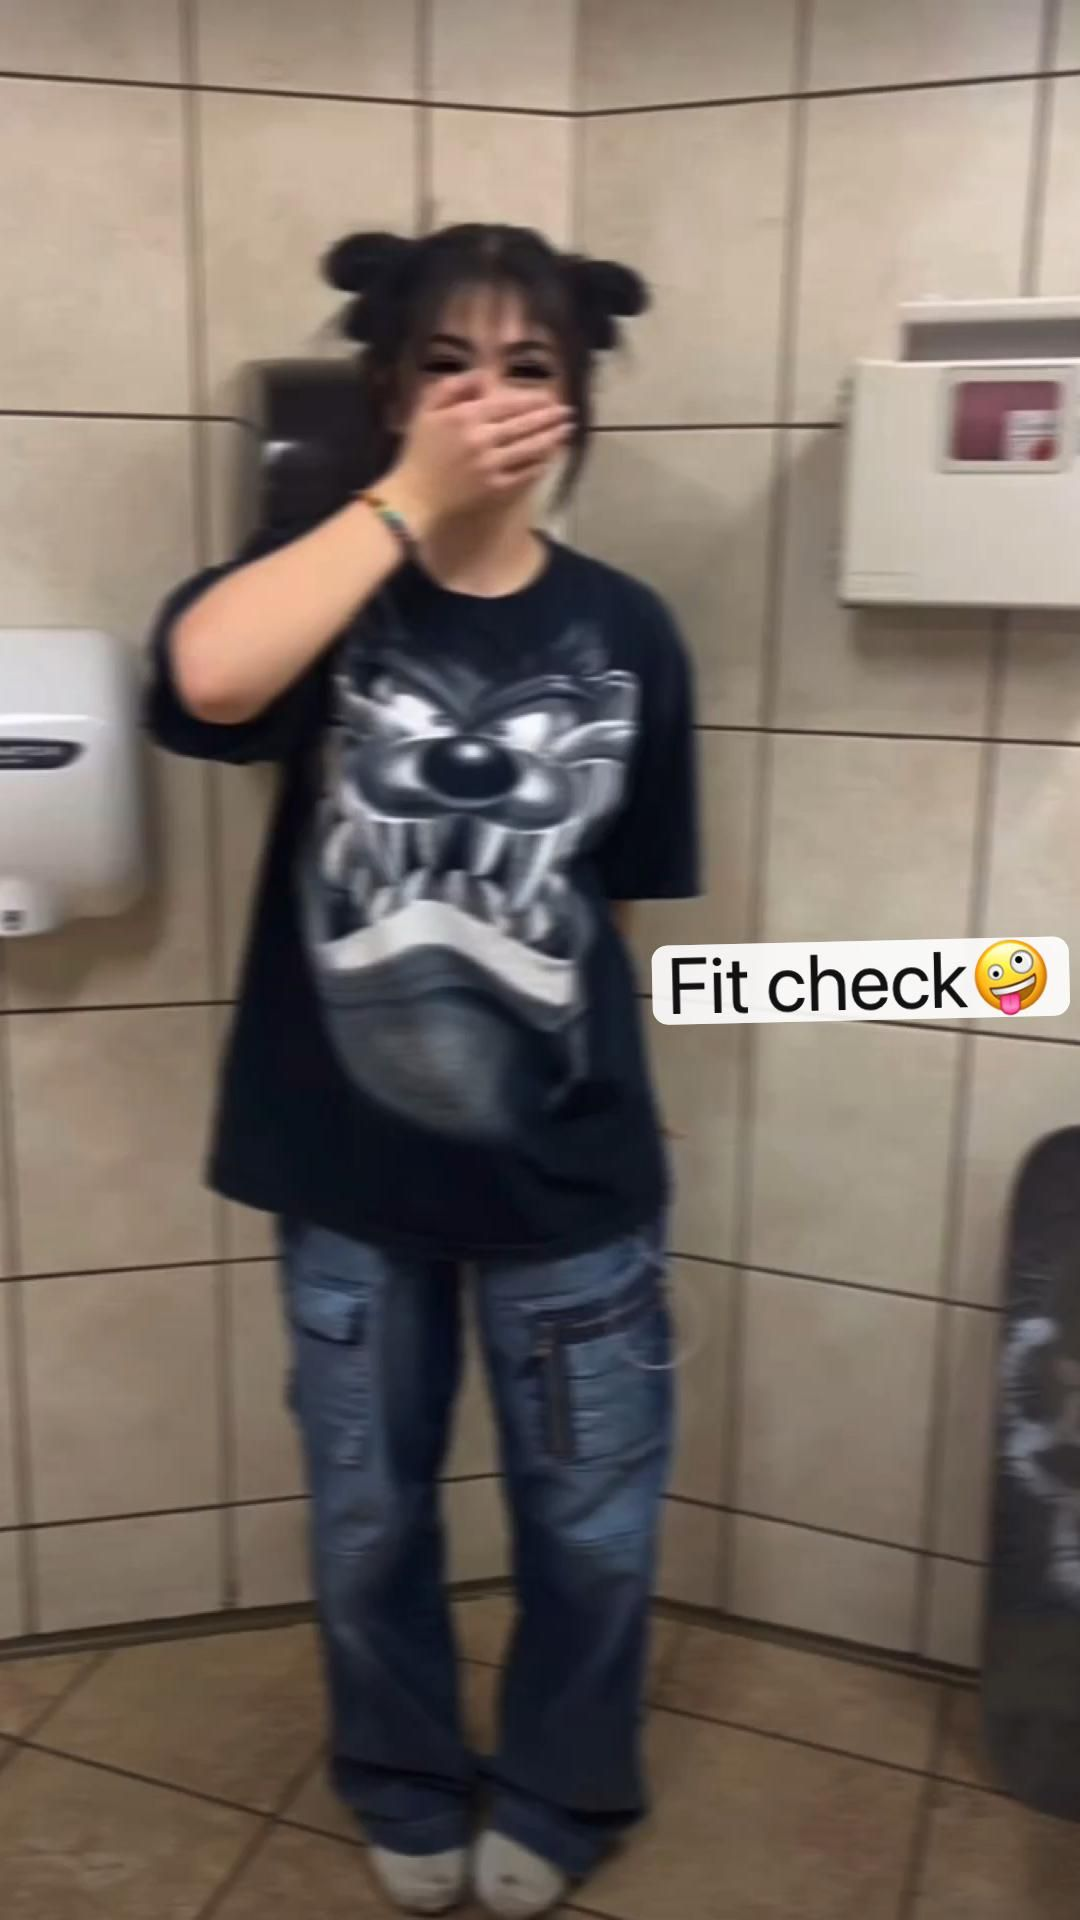 Fit check🤪